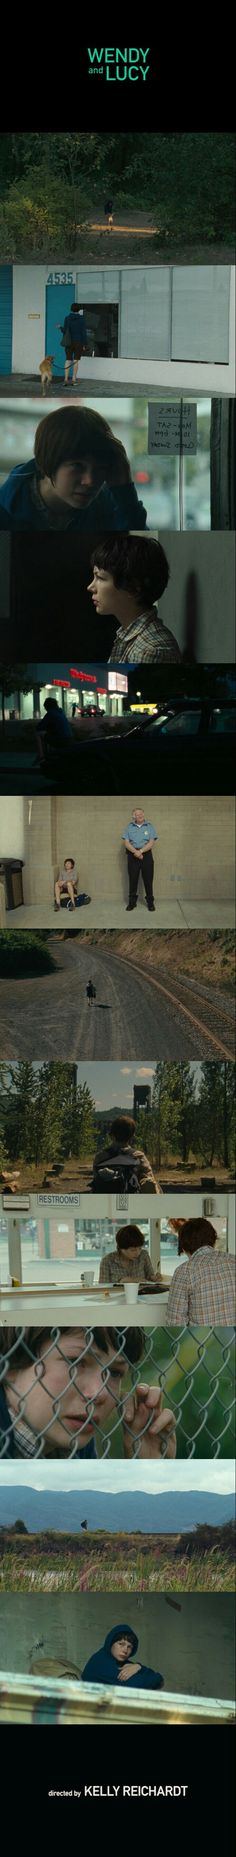 Wendy and Lucy (2008) Directed by Kelly Reichardt.